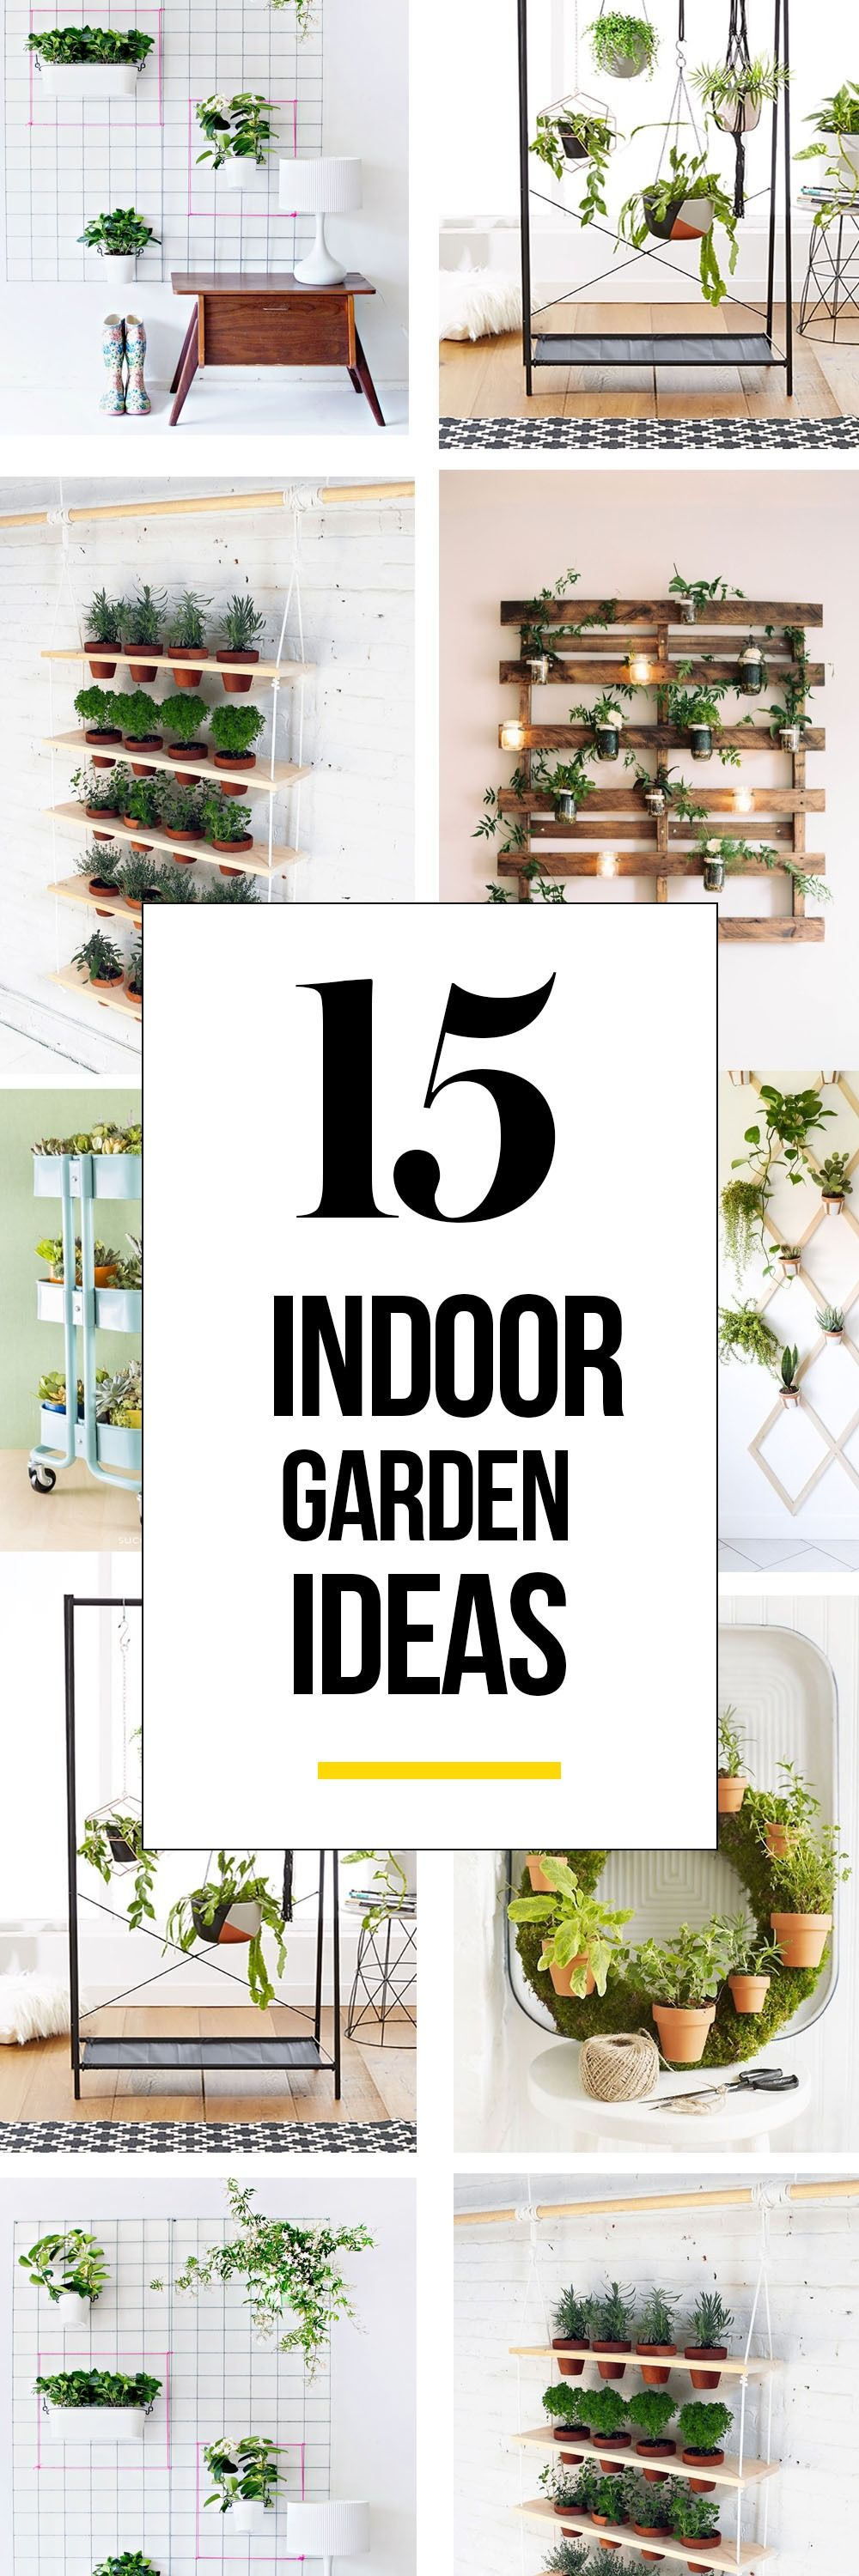 Twin Platform Bed Ikea, The Best Indoor Garden Ideas For Bringing The Great Outdoors Inside Small Space Gardening Plants Indoor Apartment Apartment Plants